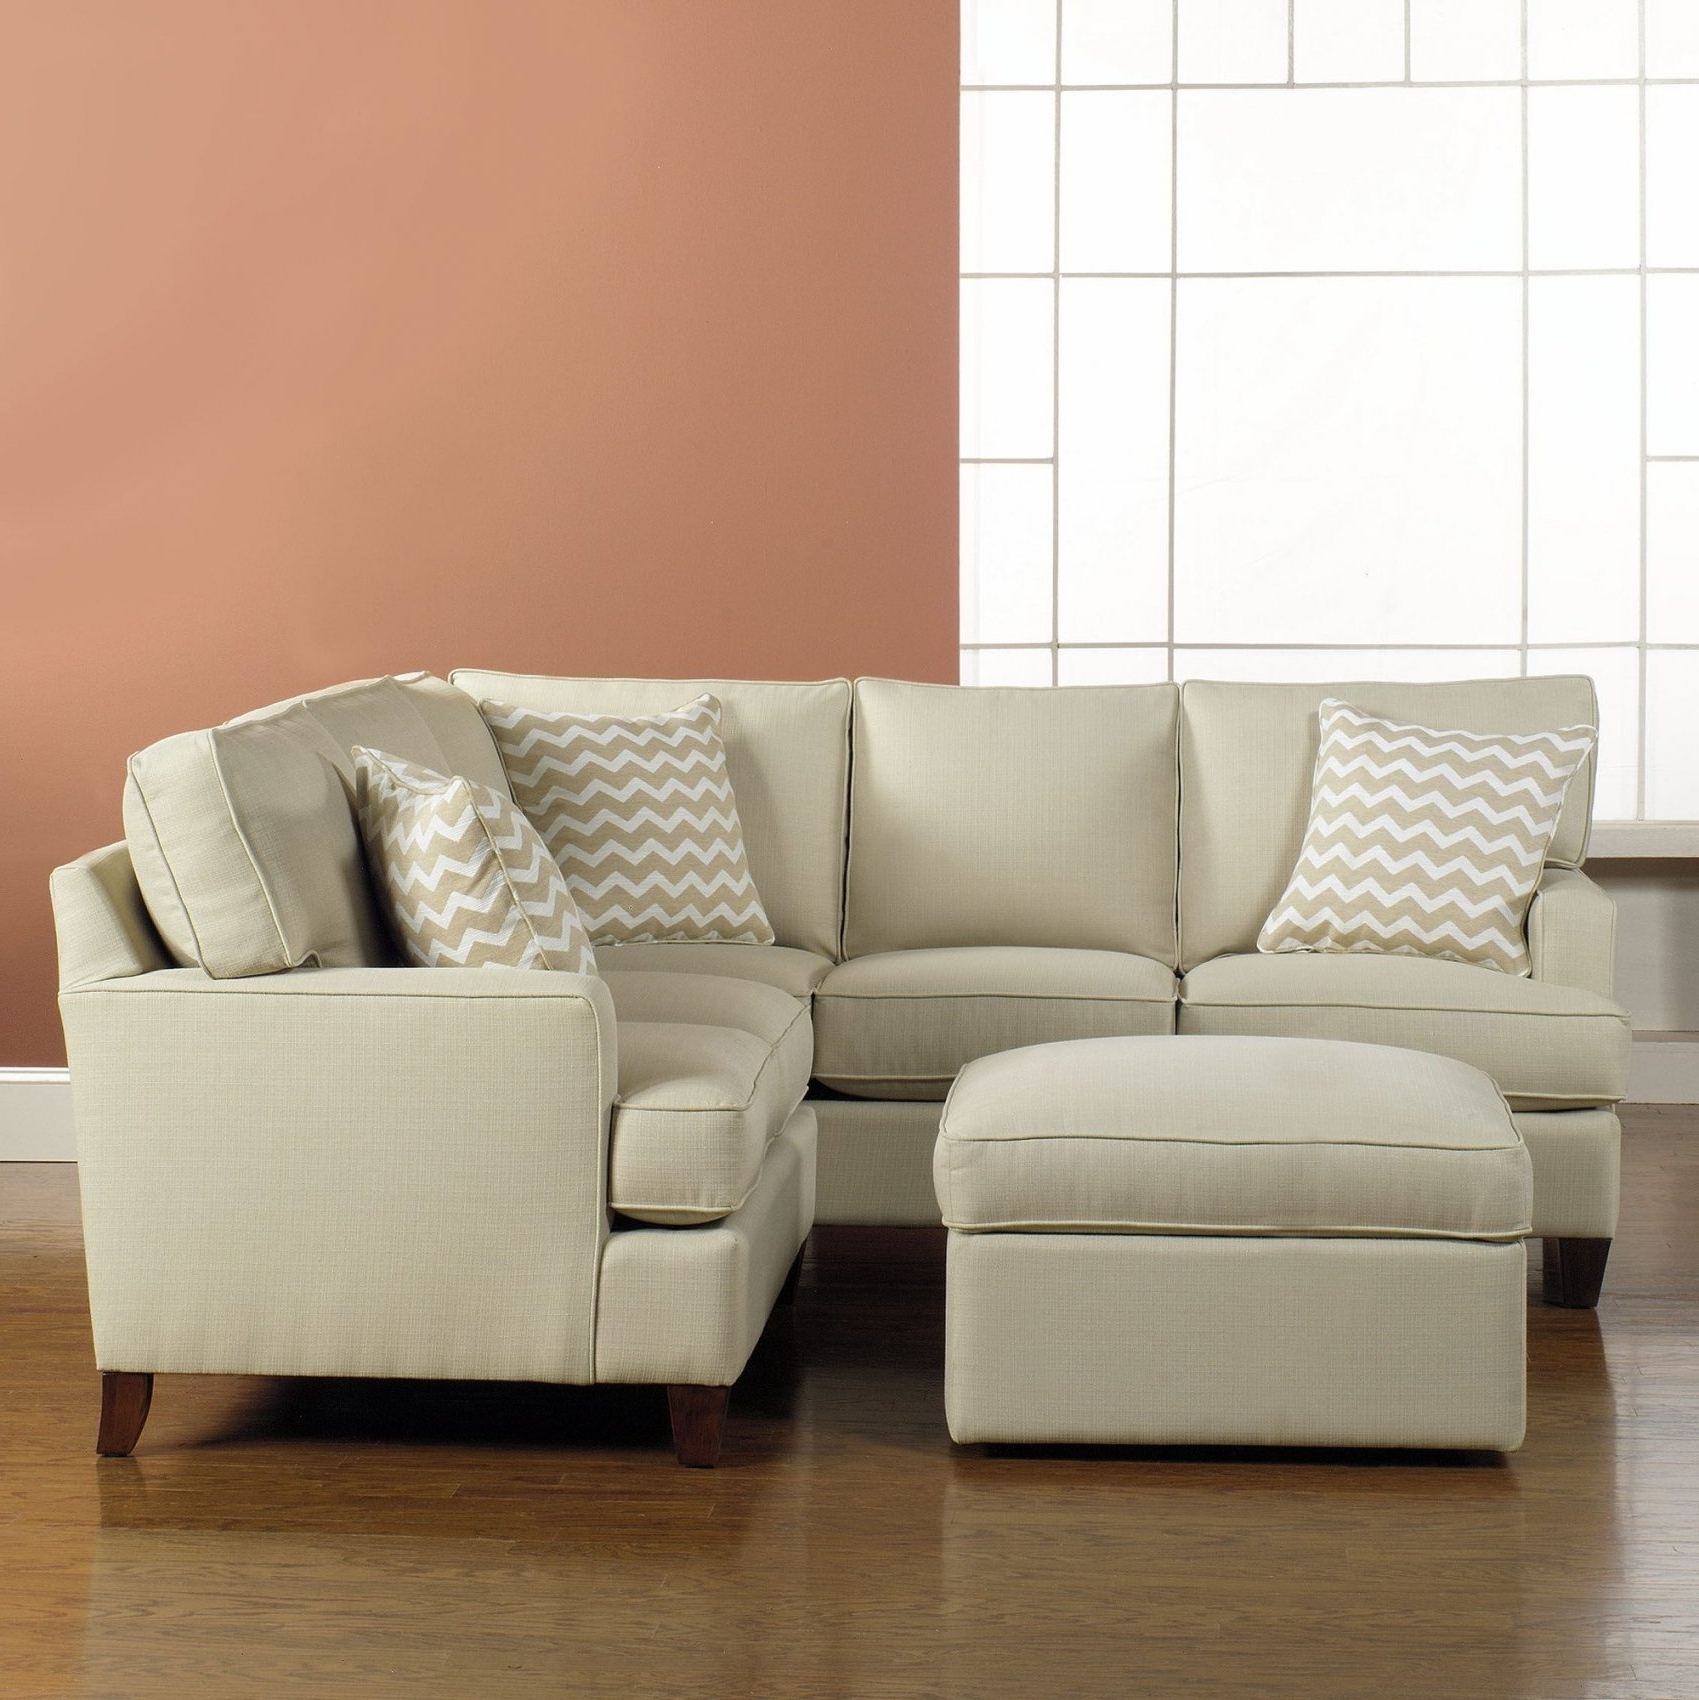 Sectional Sofa For Small Spaces 94 In Living Room Sofa With Inside Most Recent Small Sectional Sofas For Small Spaces (View 11 of 20)